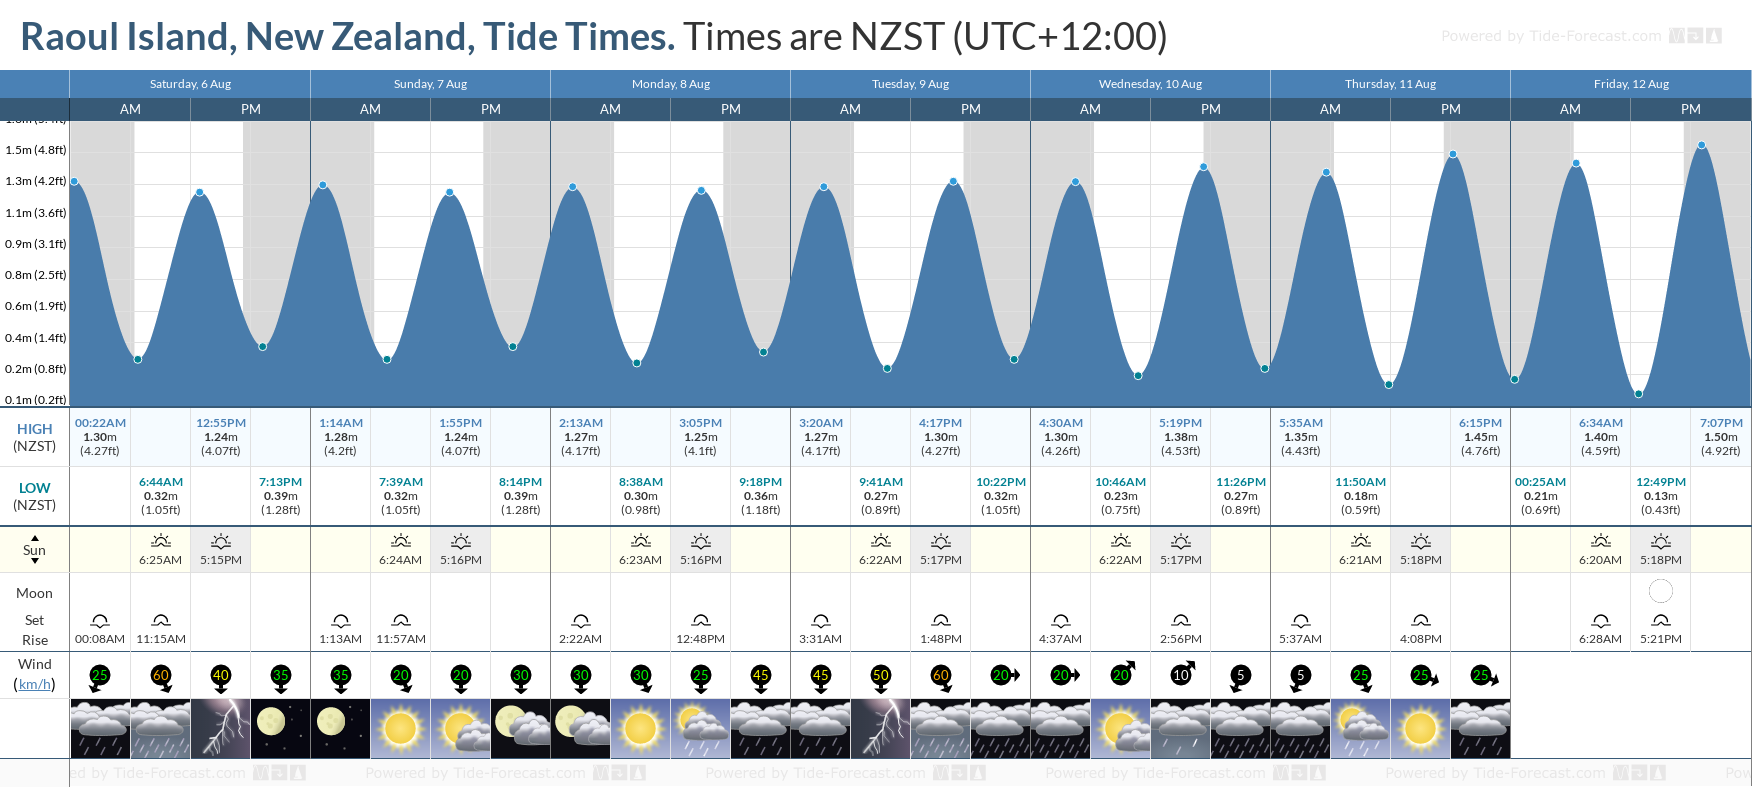 Raoul Island, New Zealand Tide Chart including high and low tide tide times for the next 7 days